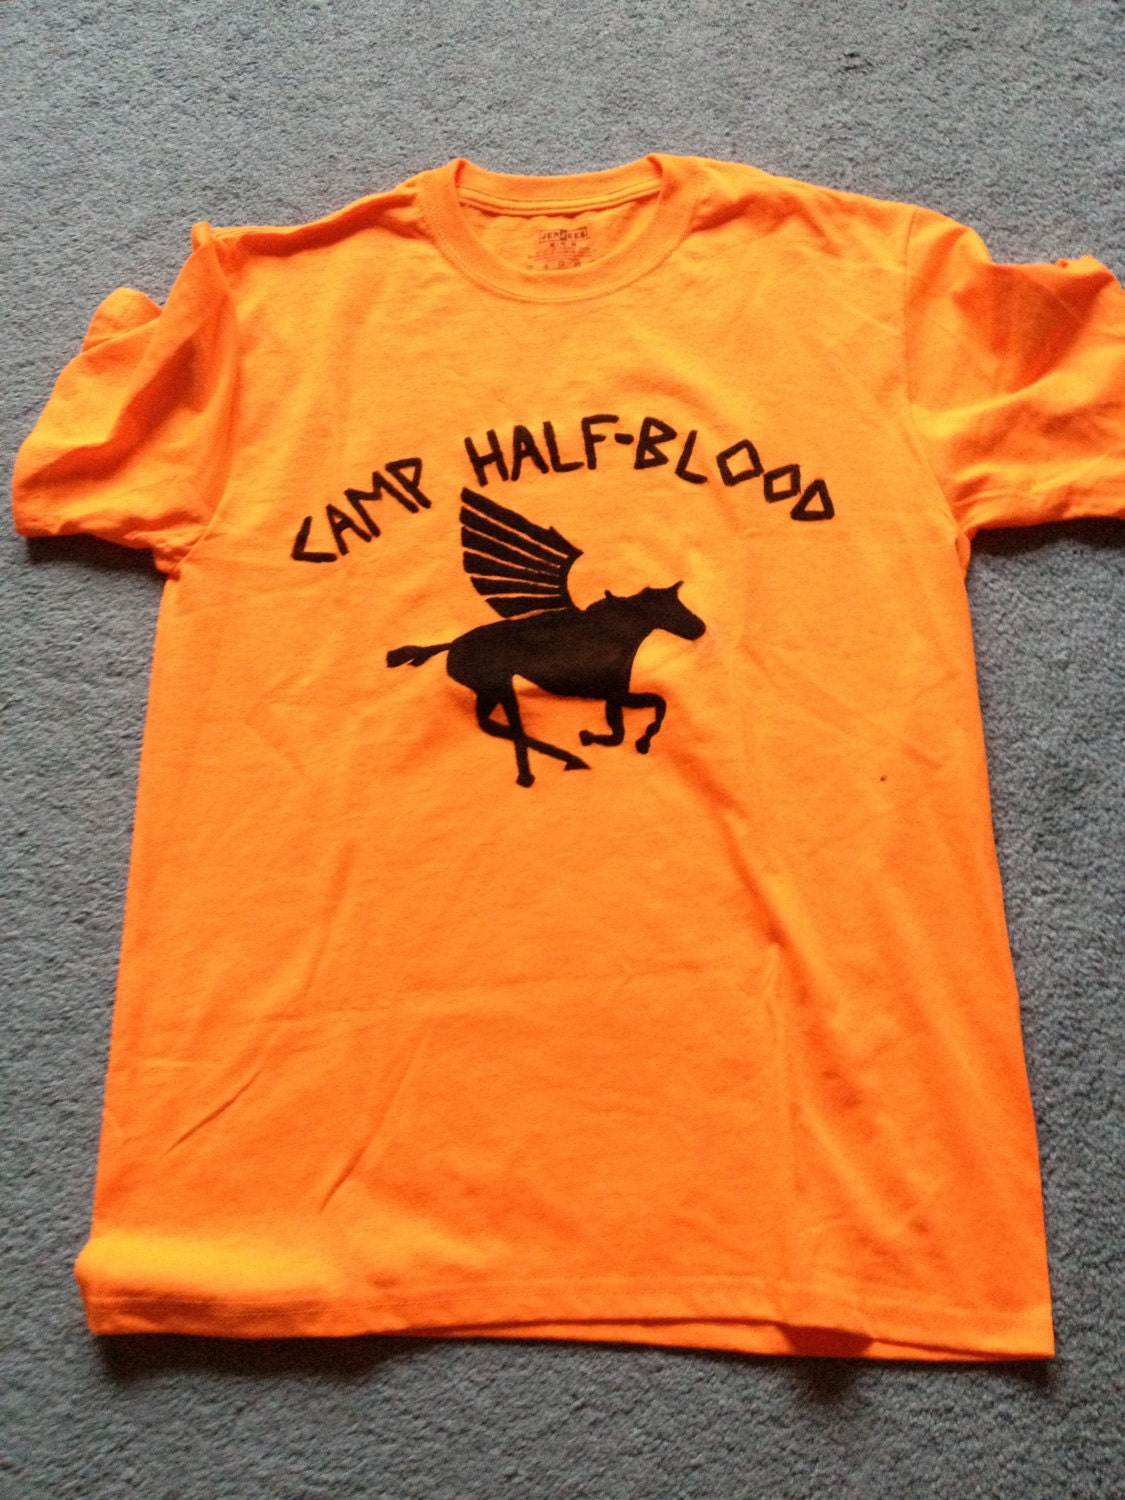 Camp Half Blood T Shirt From The Percy Jackson